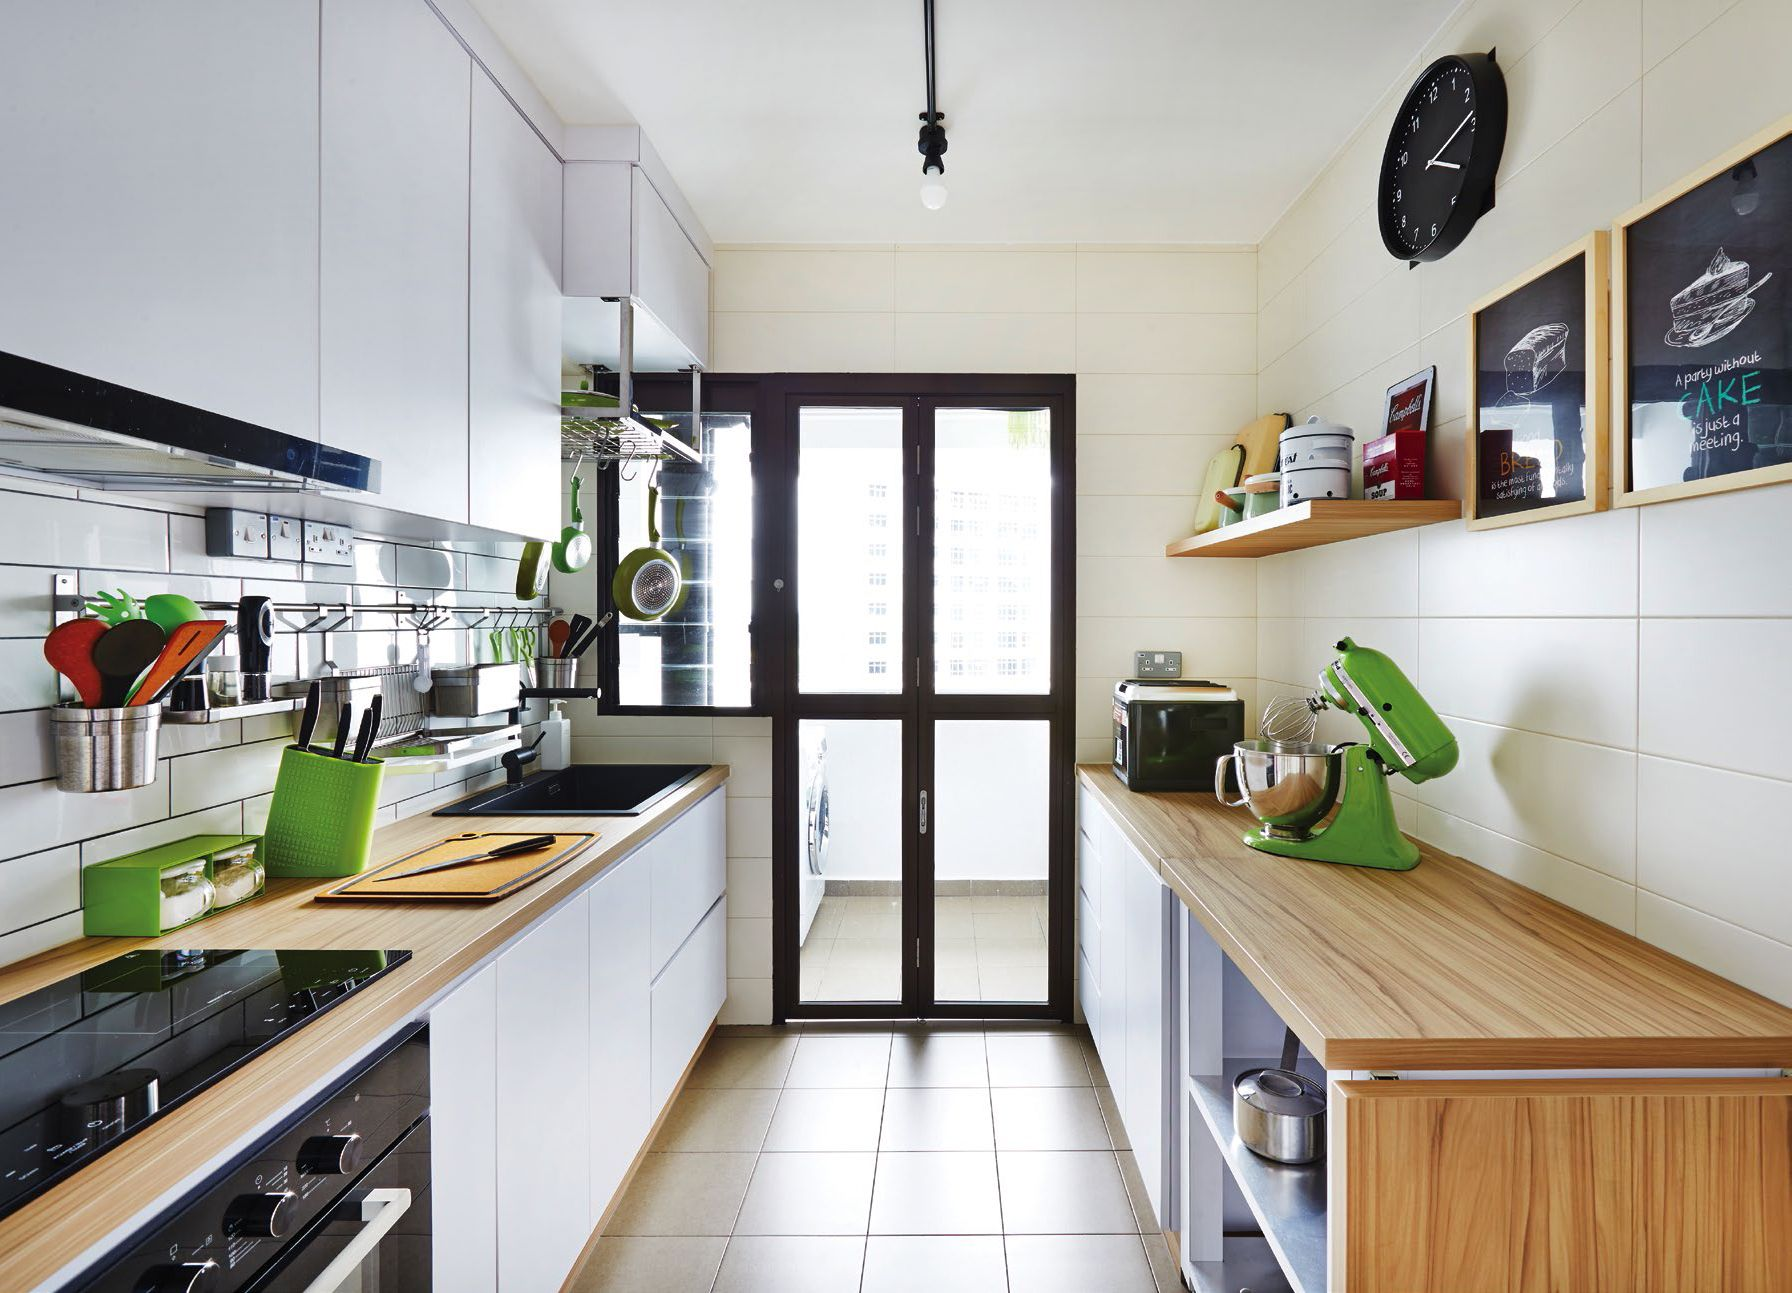 Nice bright kitchen. Note: important to be very bright for cooking ...